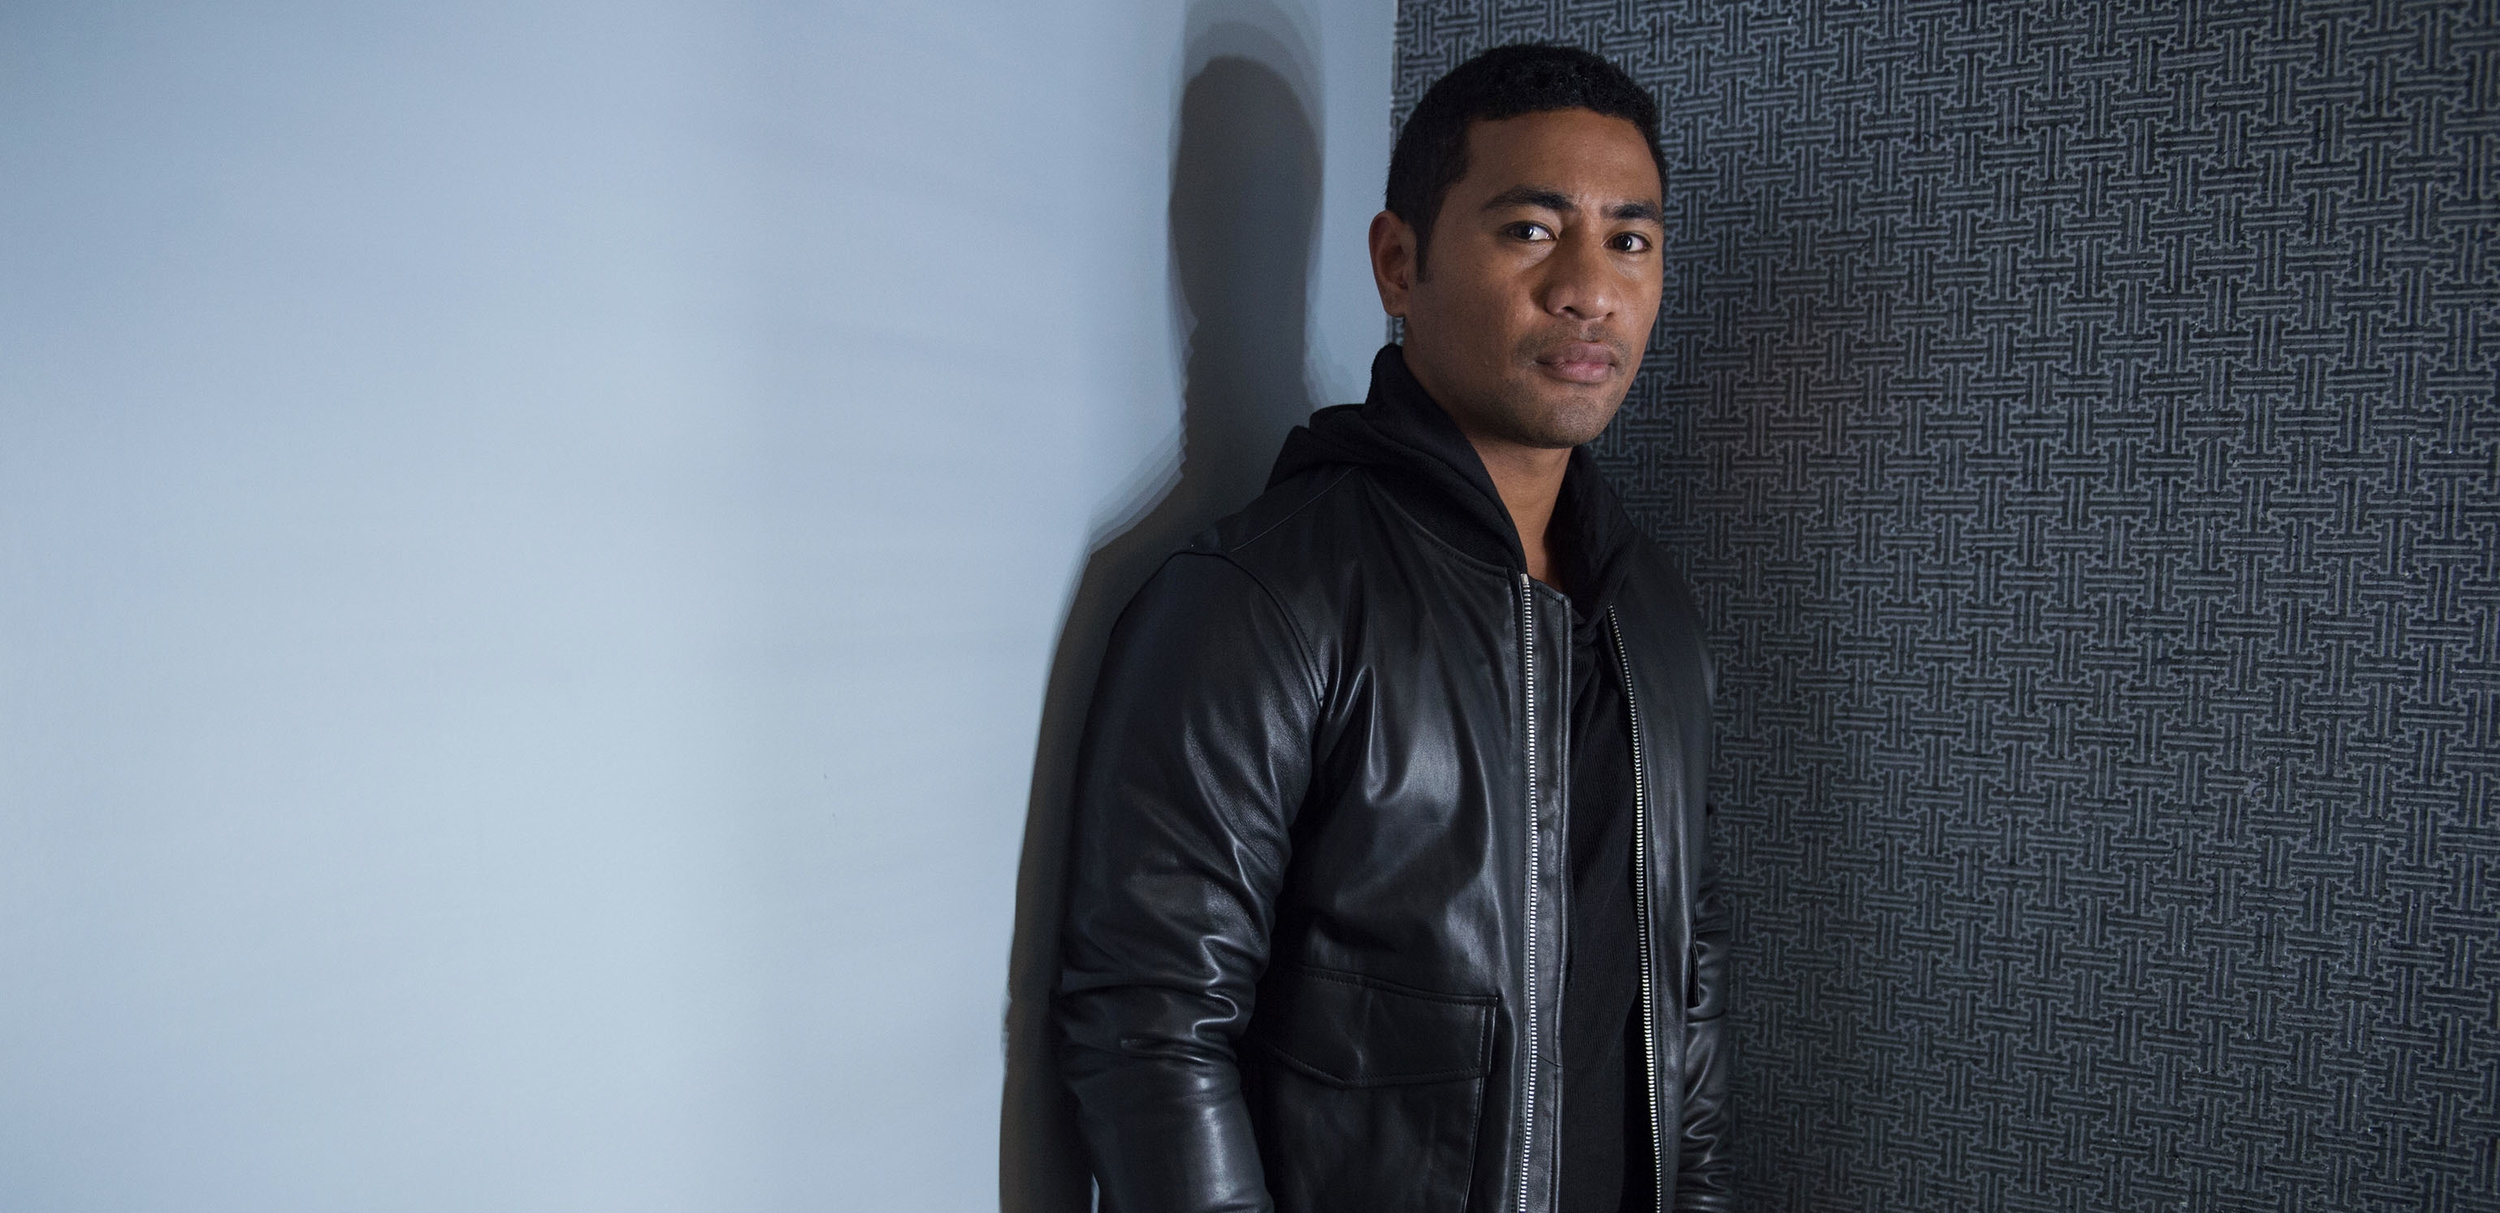 BEULAH KOALE | Solo | THANK YOU FOR YOUR SERVICE